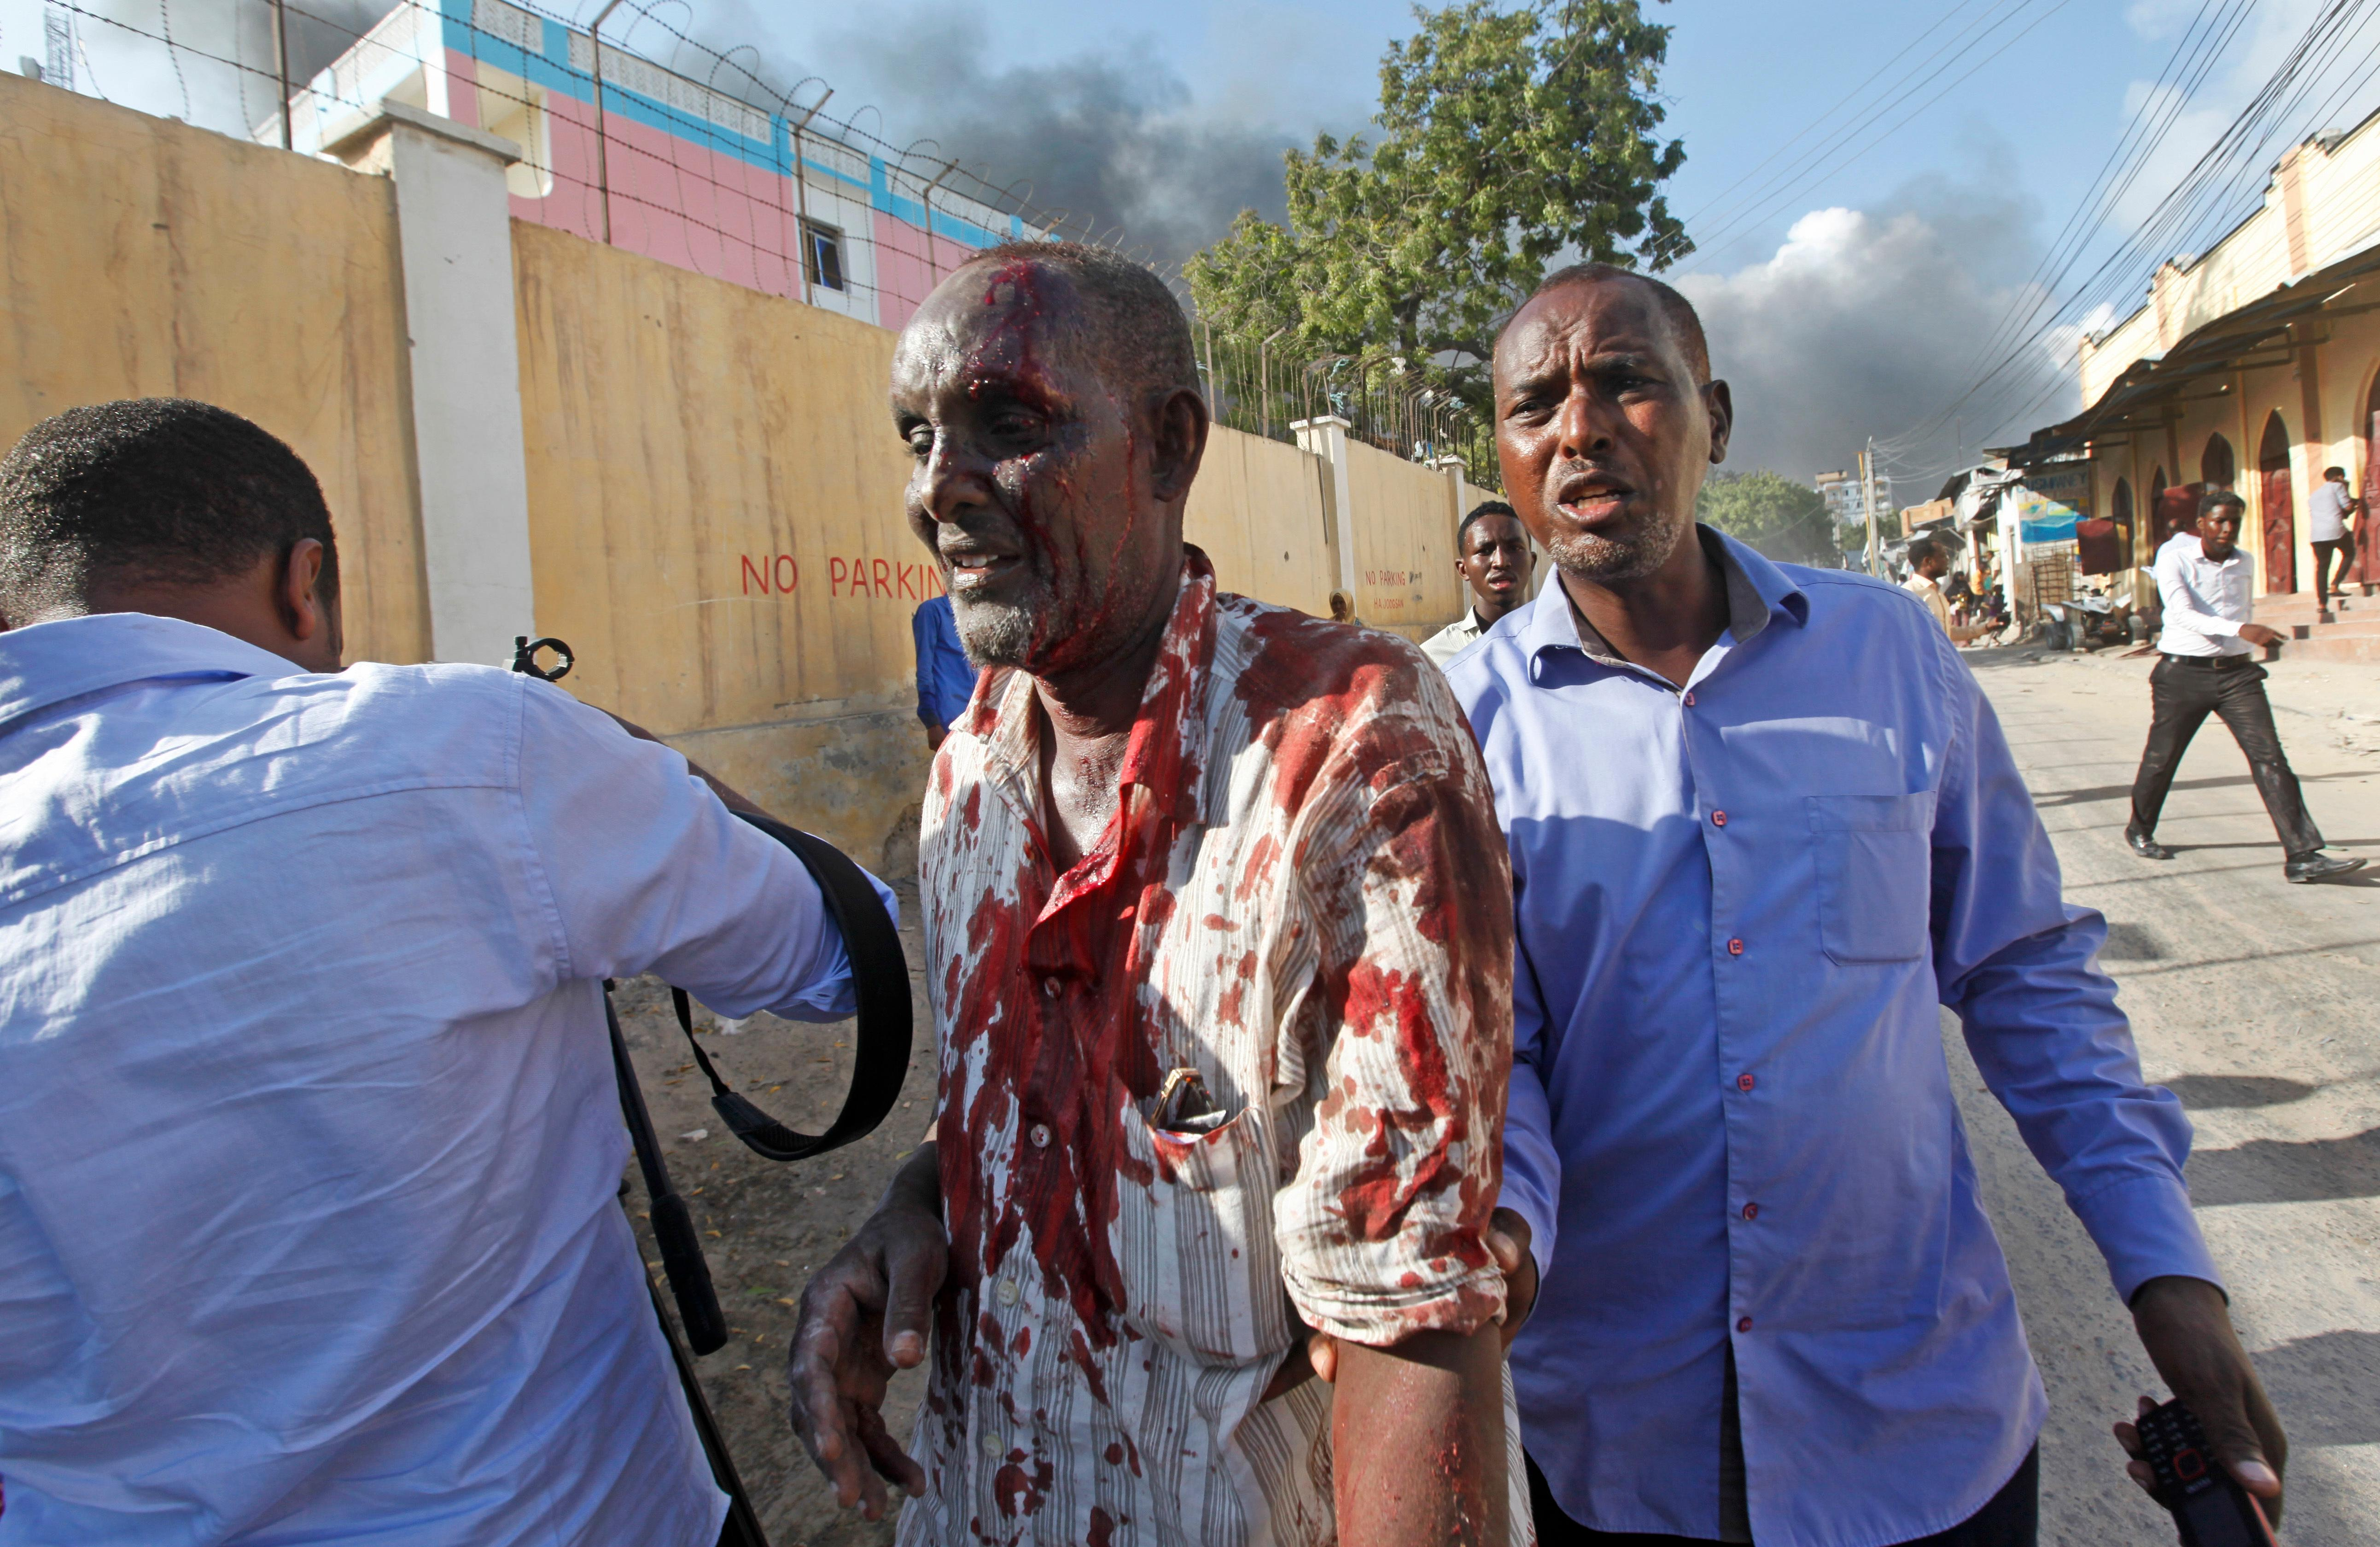 Somalis help a man wounded after a blast in the capital Mogadishu, Somalia Saturday, Oct. 14, 2017.  A huge explosion from a truck bomb has killed at least 20 people in Somalia's capital, police said Saturday, as shaken residents called it the most powerful blast they'd heard in years. (AP Photo/Farah Abdi Warsameh)